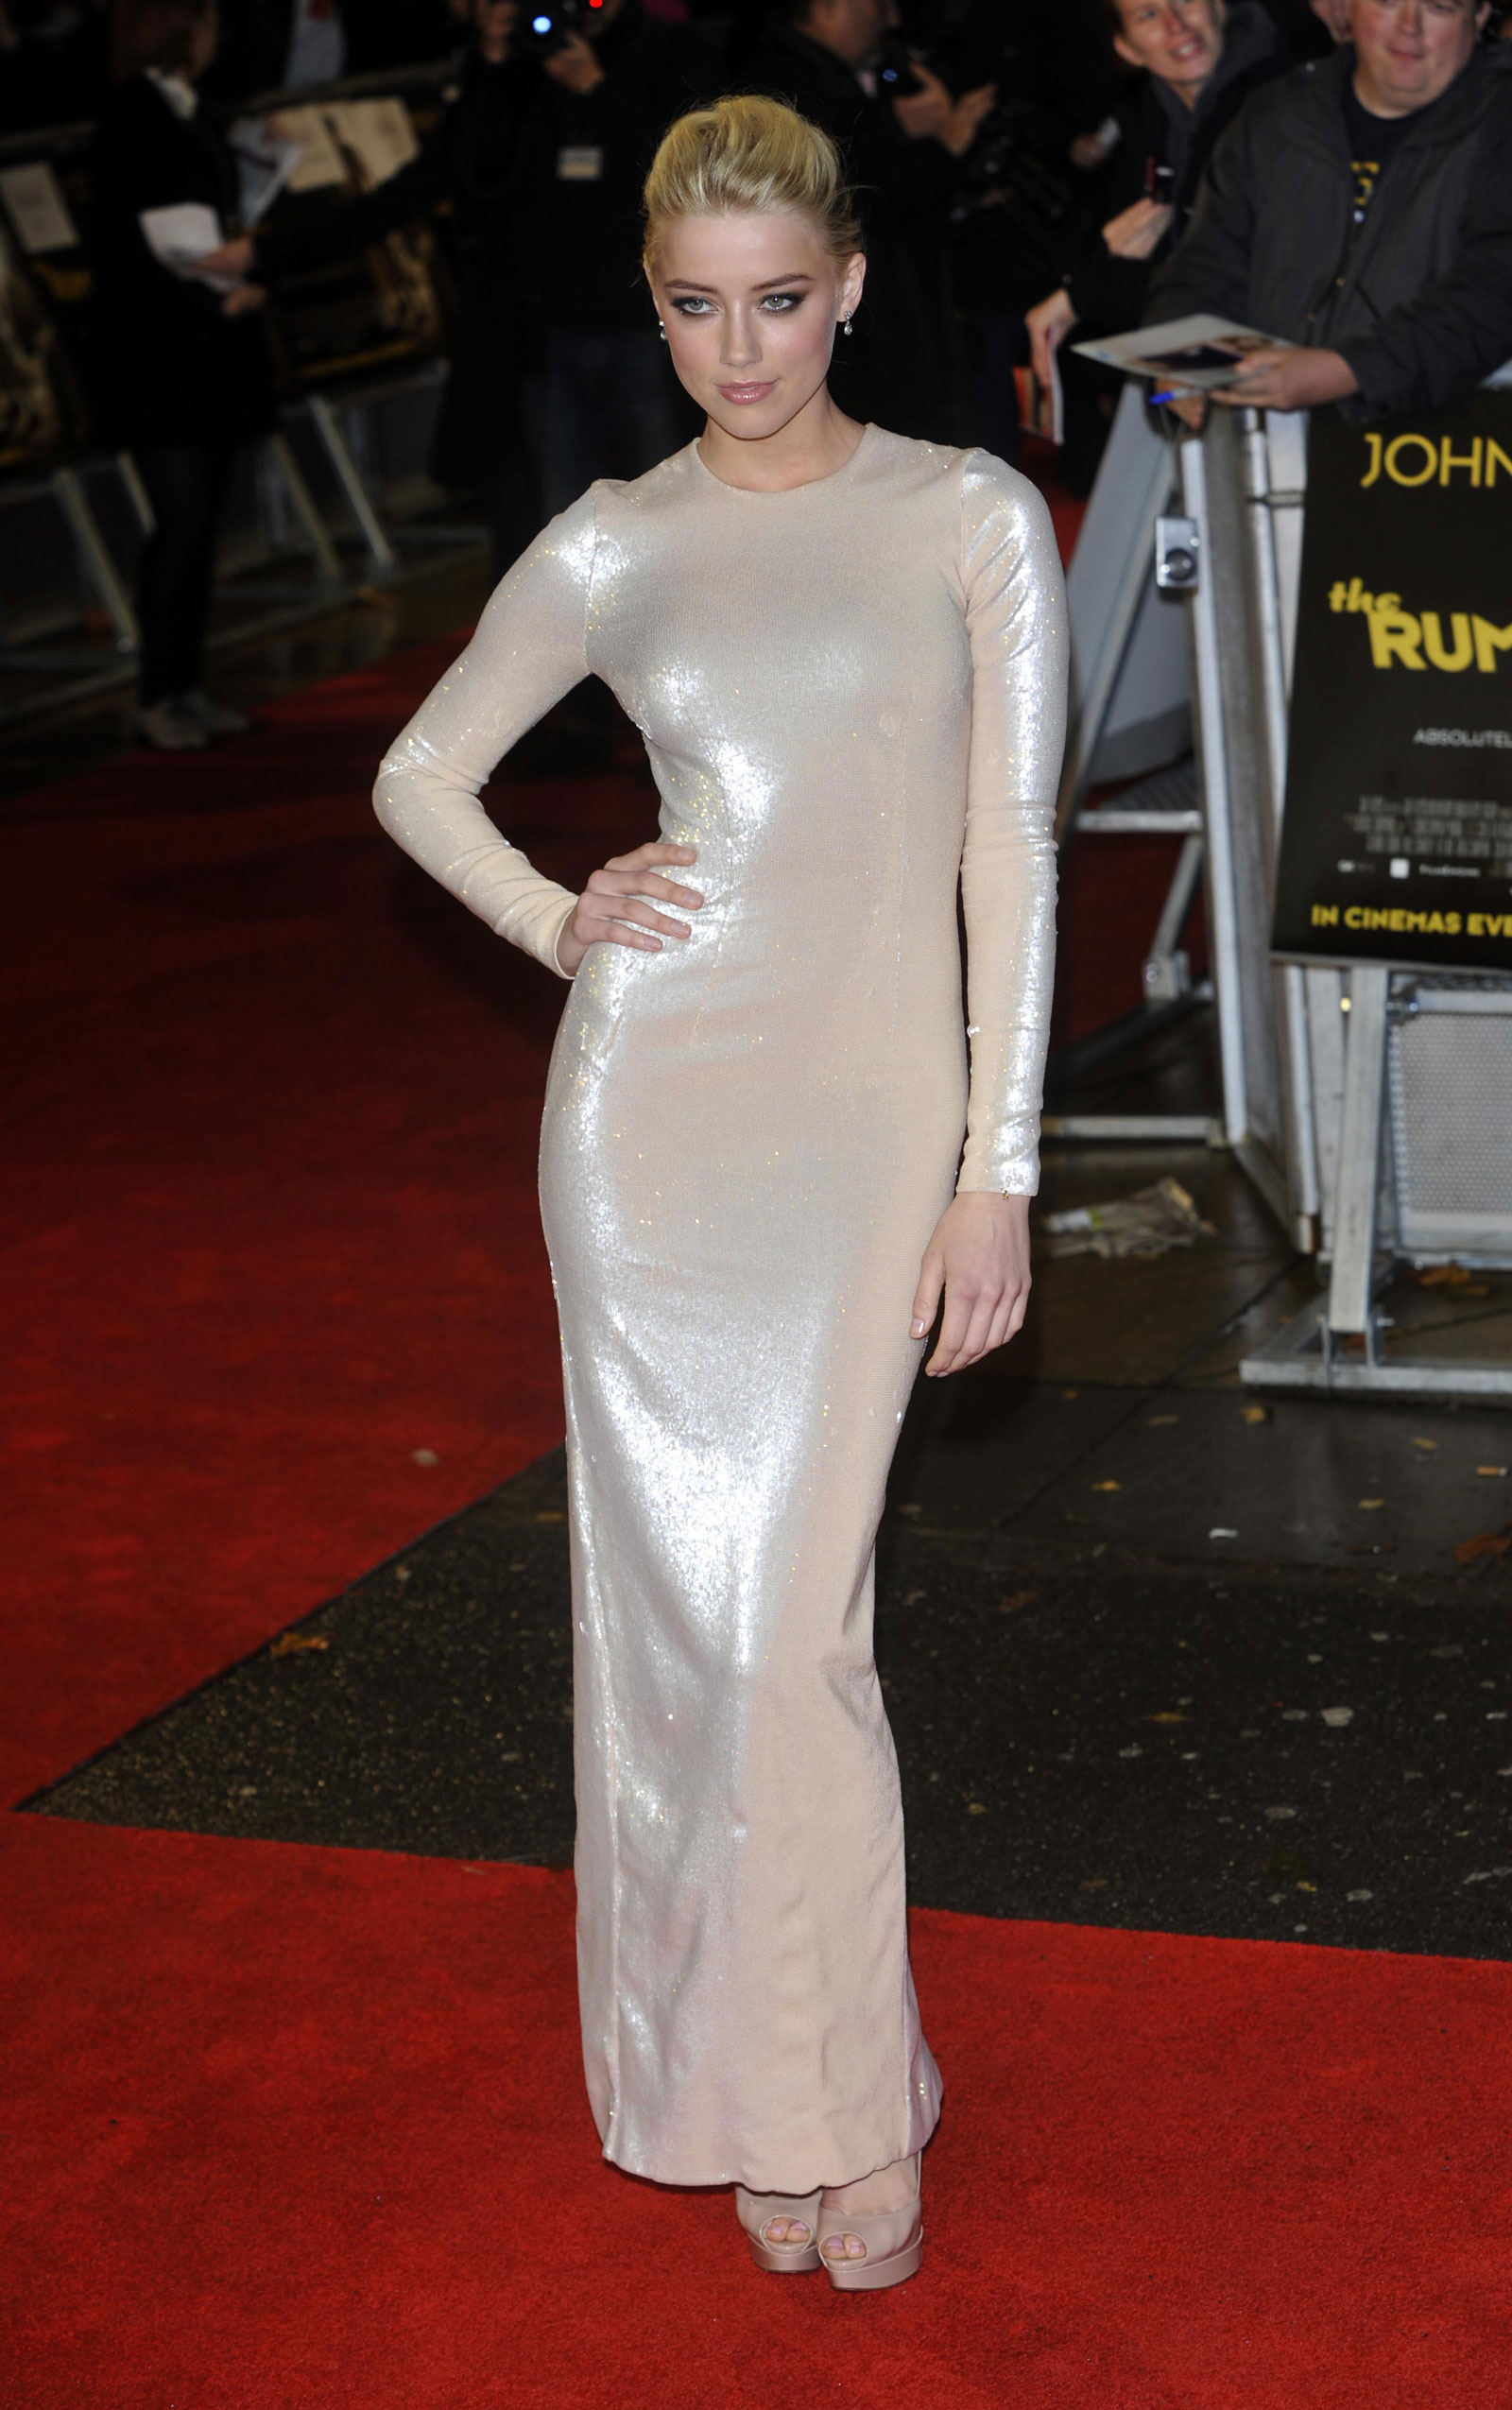 Amber Heard At The Rum Diary Premiere In London 62 Photos